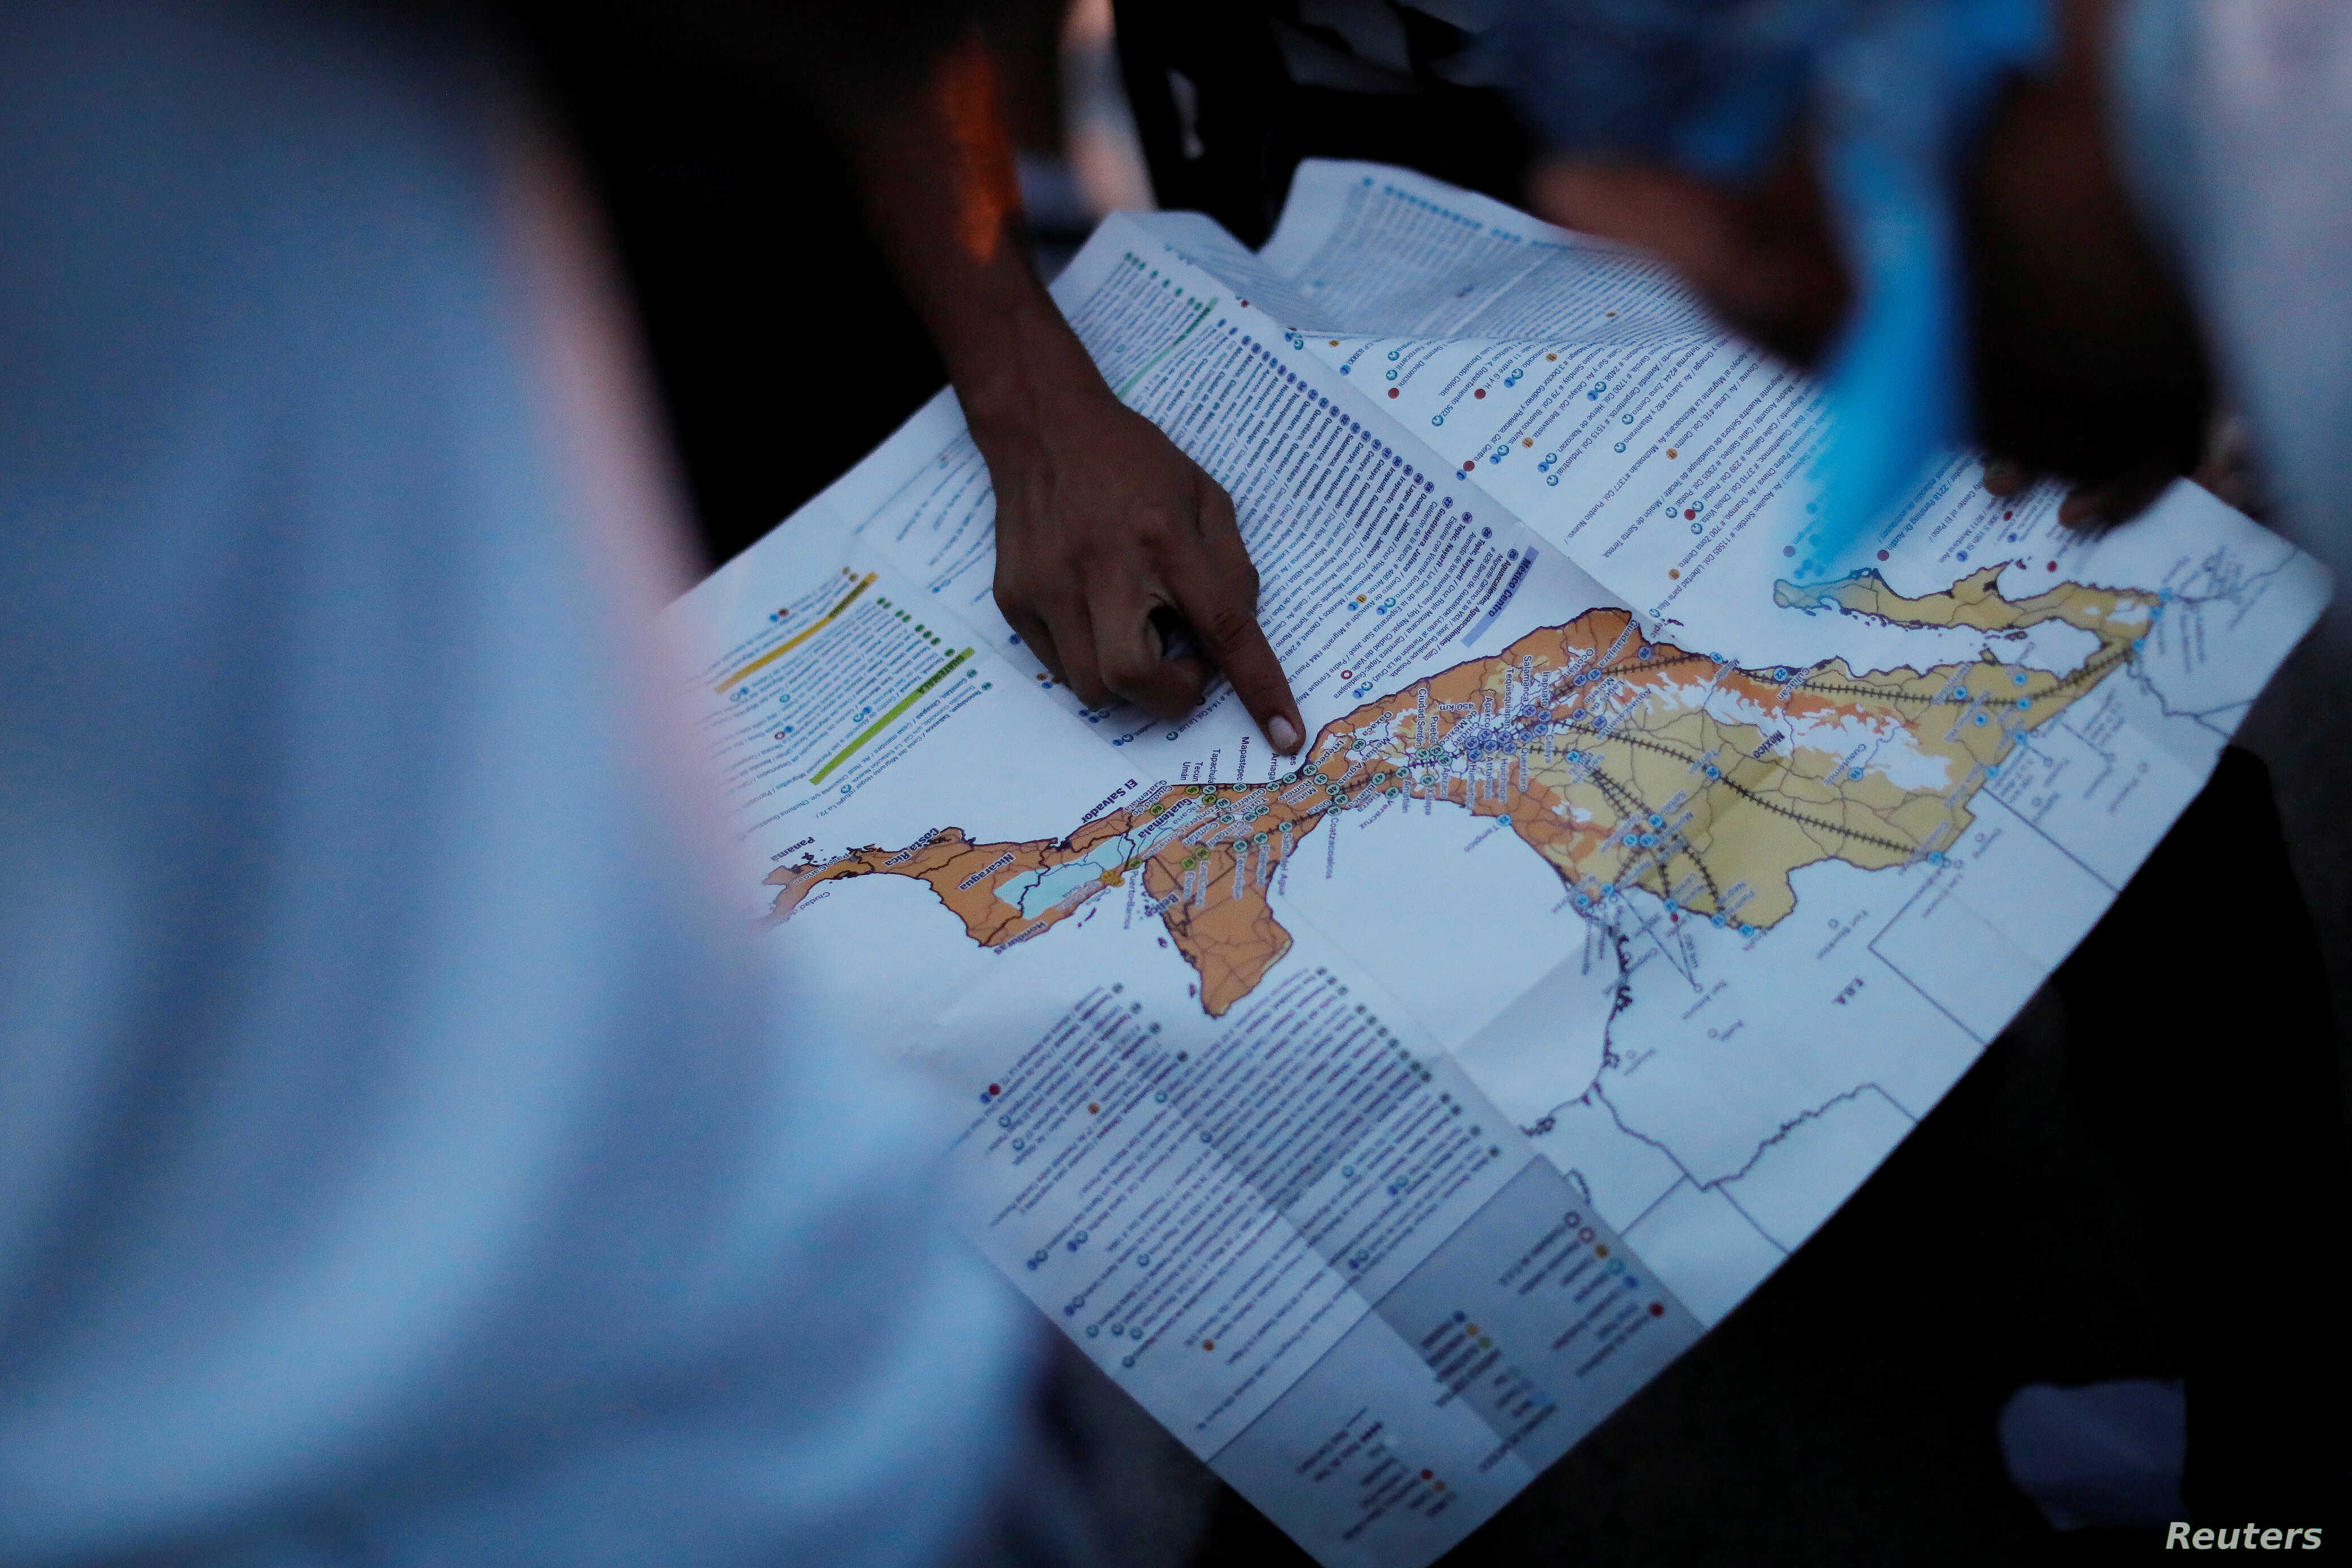 A migrant, part of a caravan of thousands traveling from Central America en route to the United States, points at a map while rest in Santiago Niltepec, Mexico, Oct. 29, 2018.